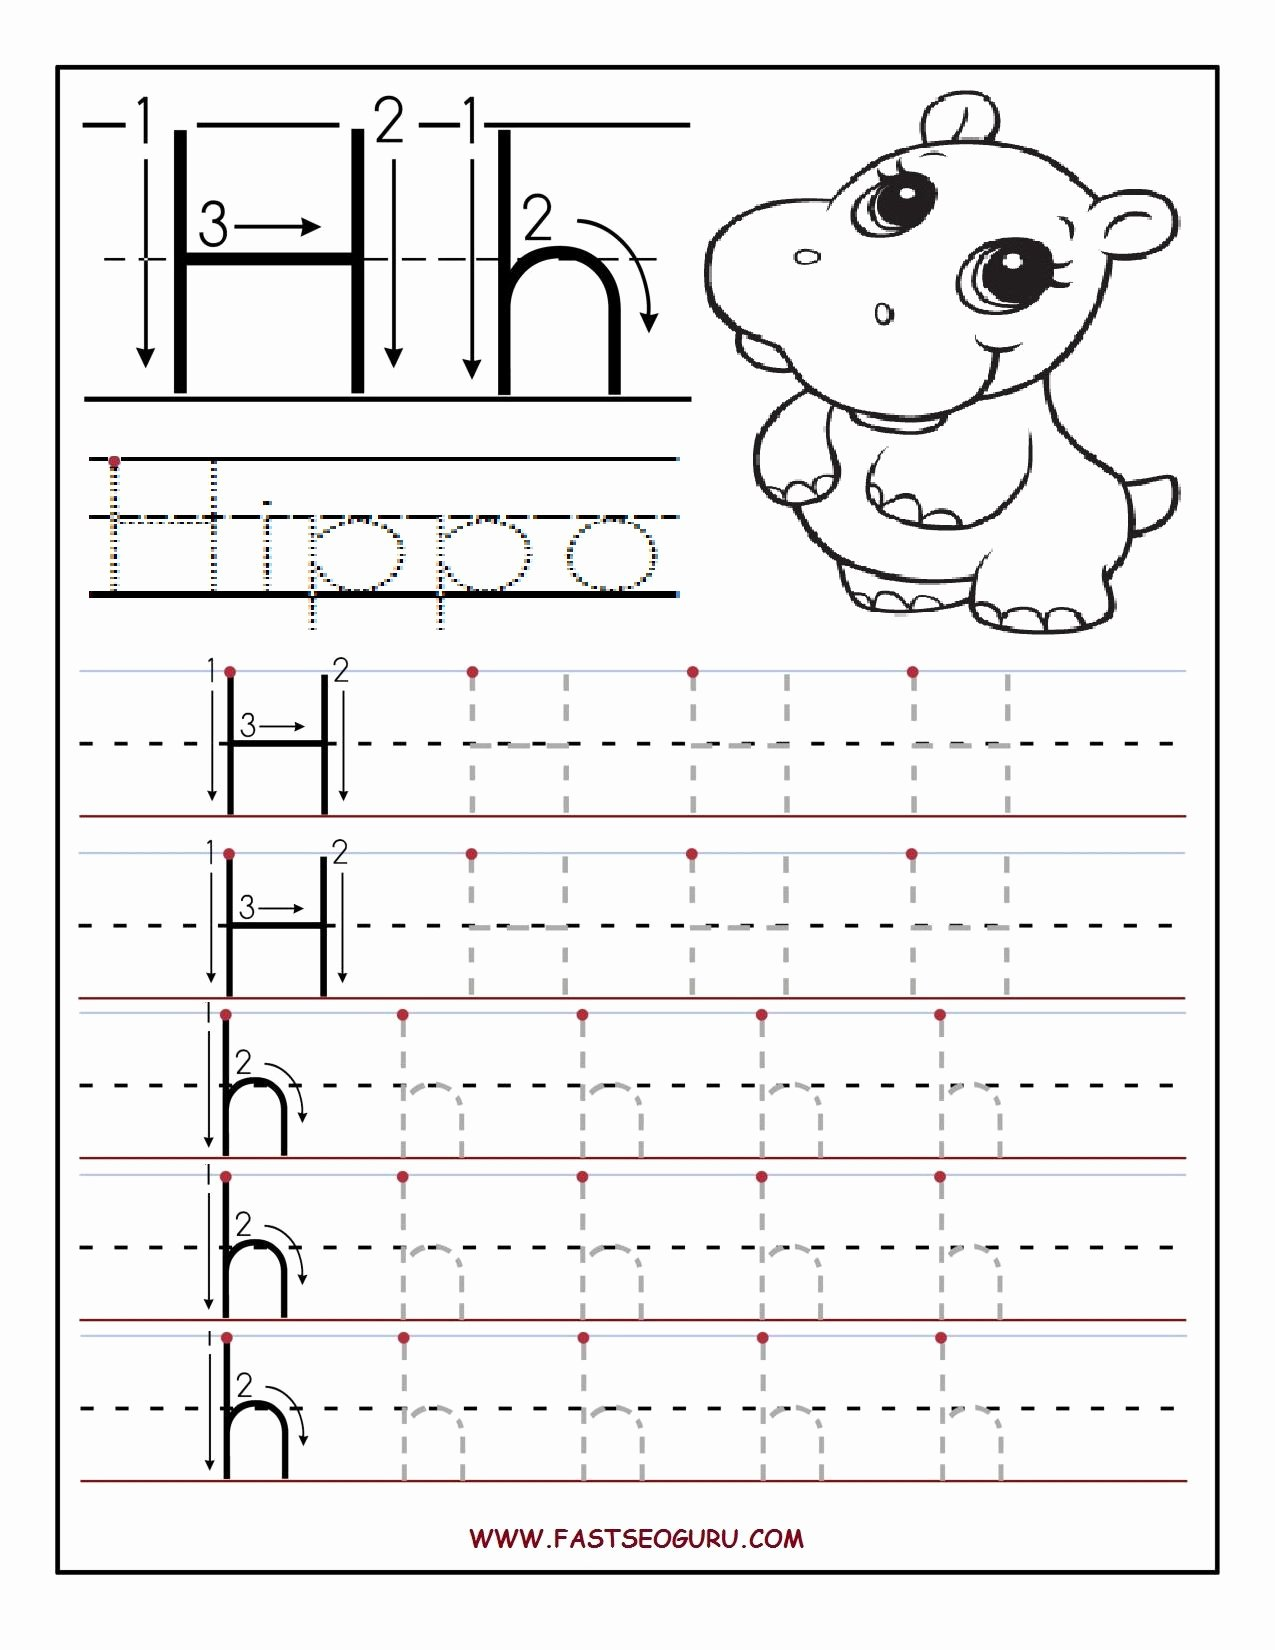 Tracing the Letter H Worksheets for Preschoolers Lovely Printable Letter H Tracing Worksheets for Preschool